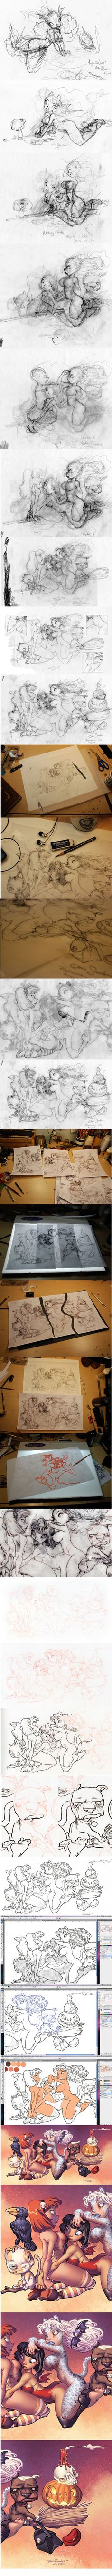 Chris Sanders sketch process